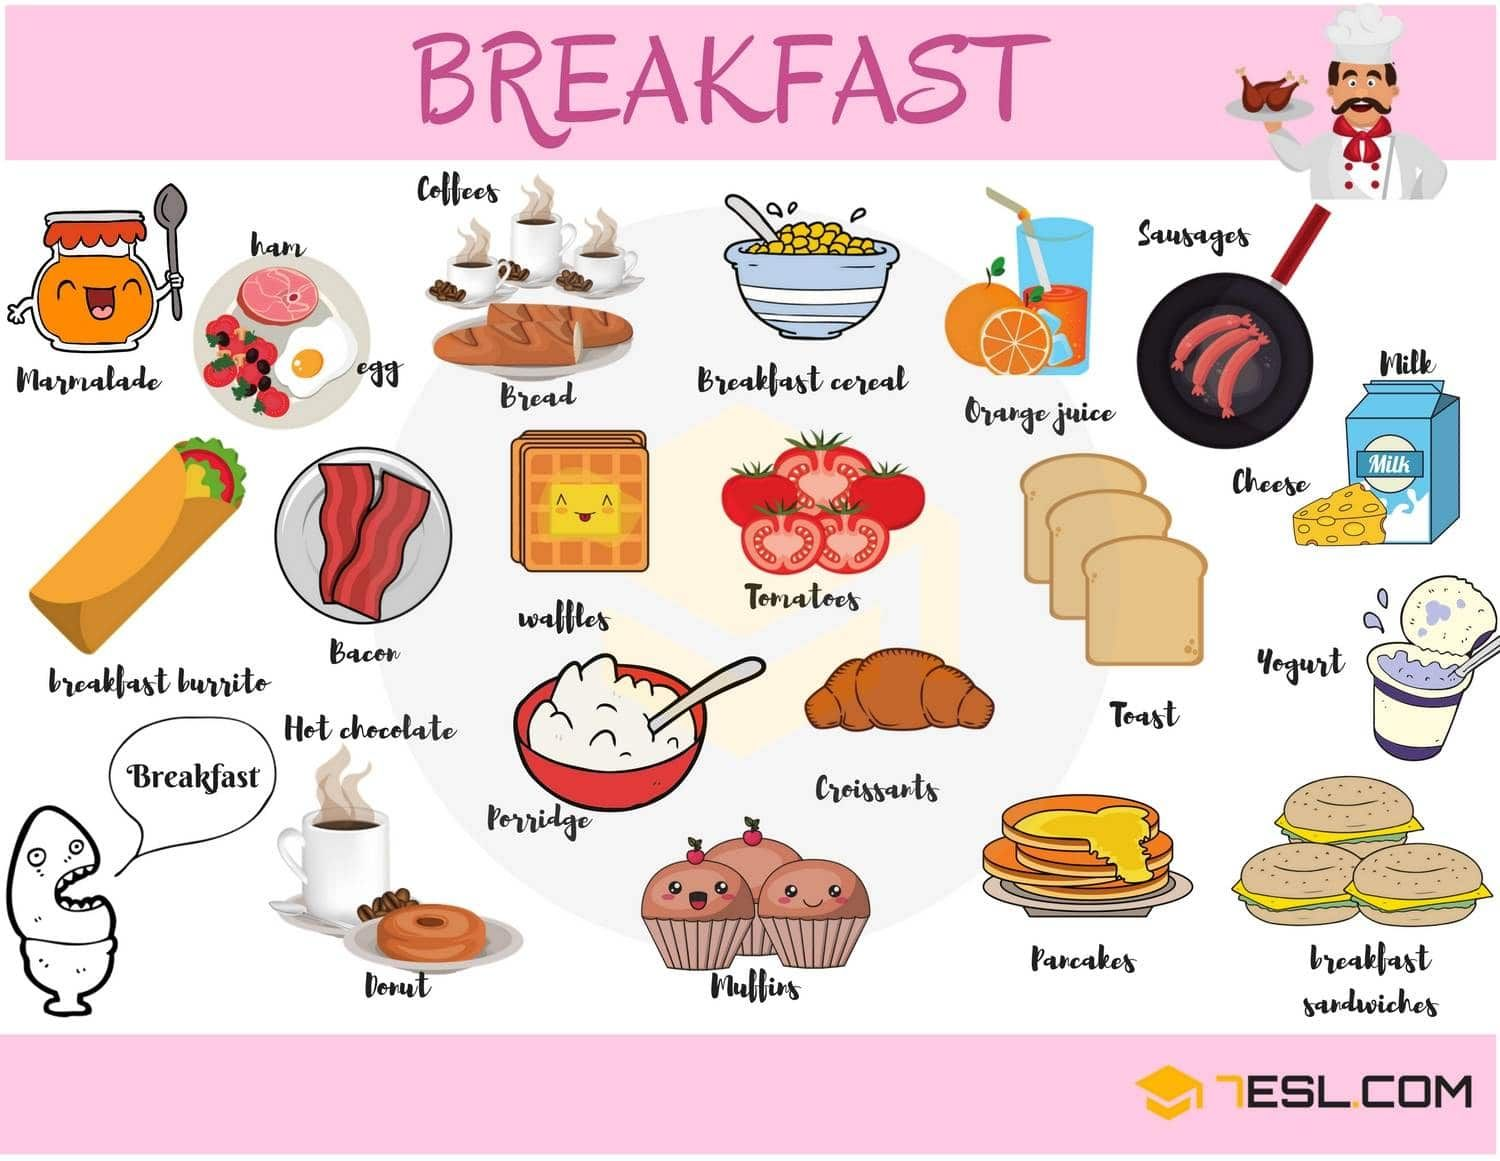 Breakfast Food List Useful List Of Breakfast Foods